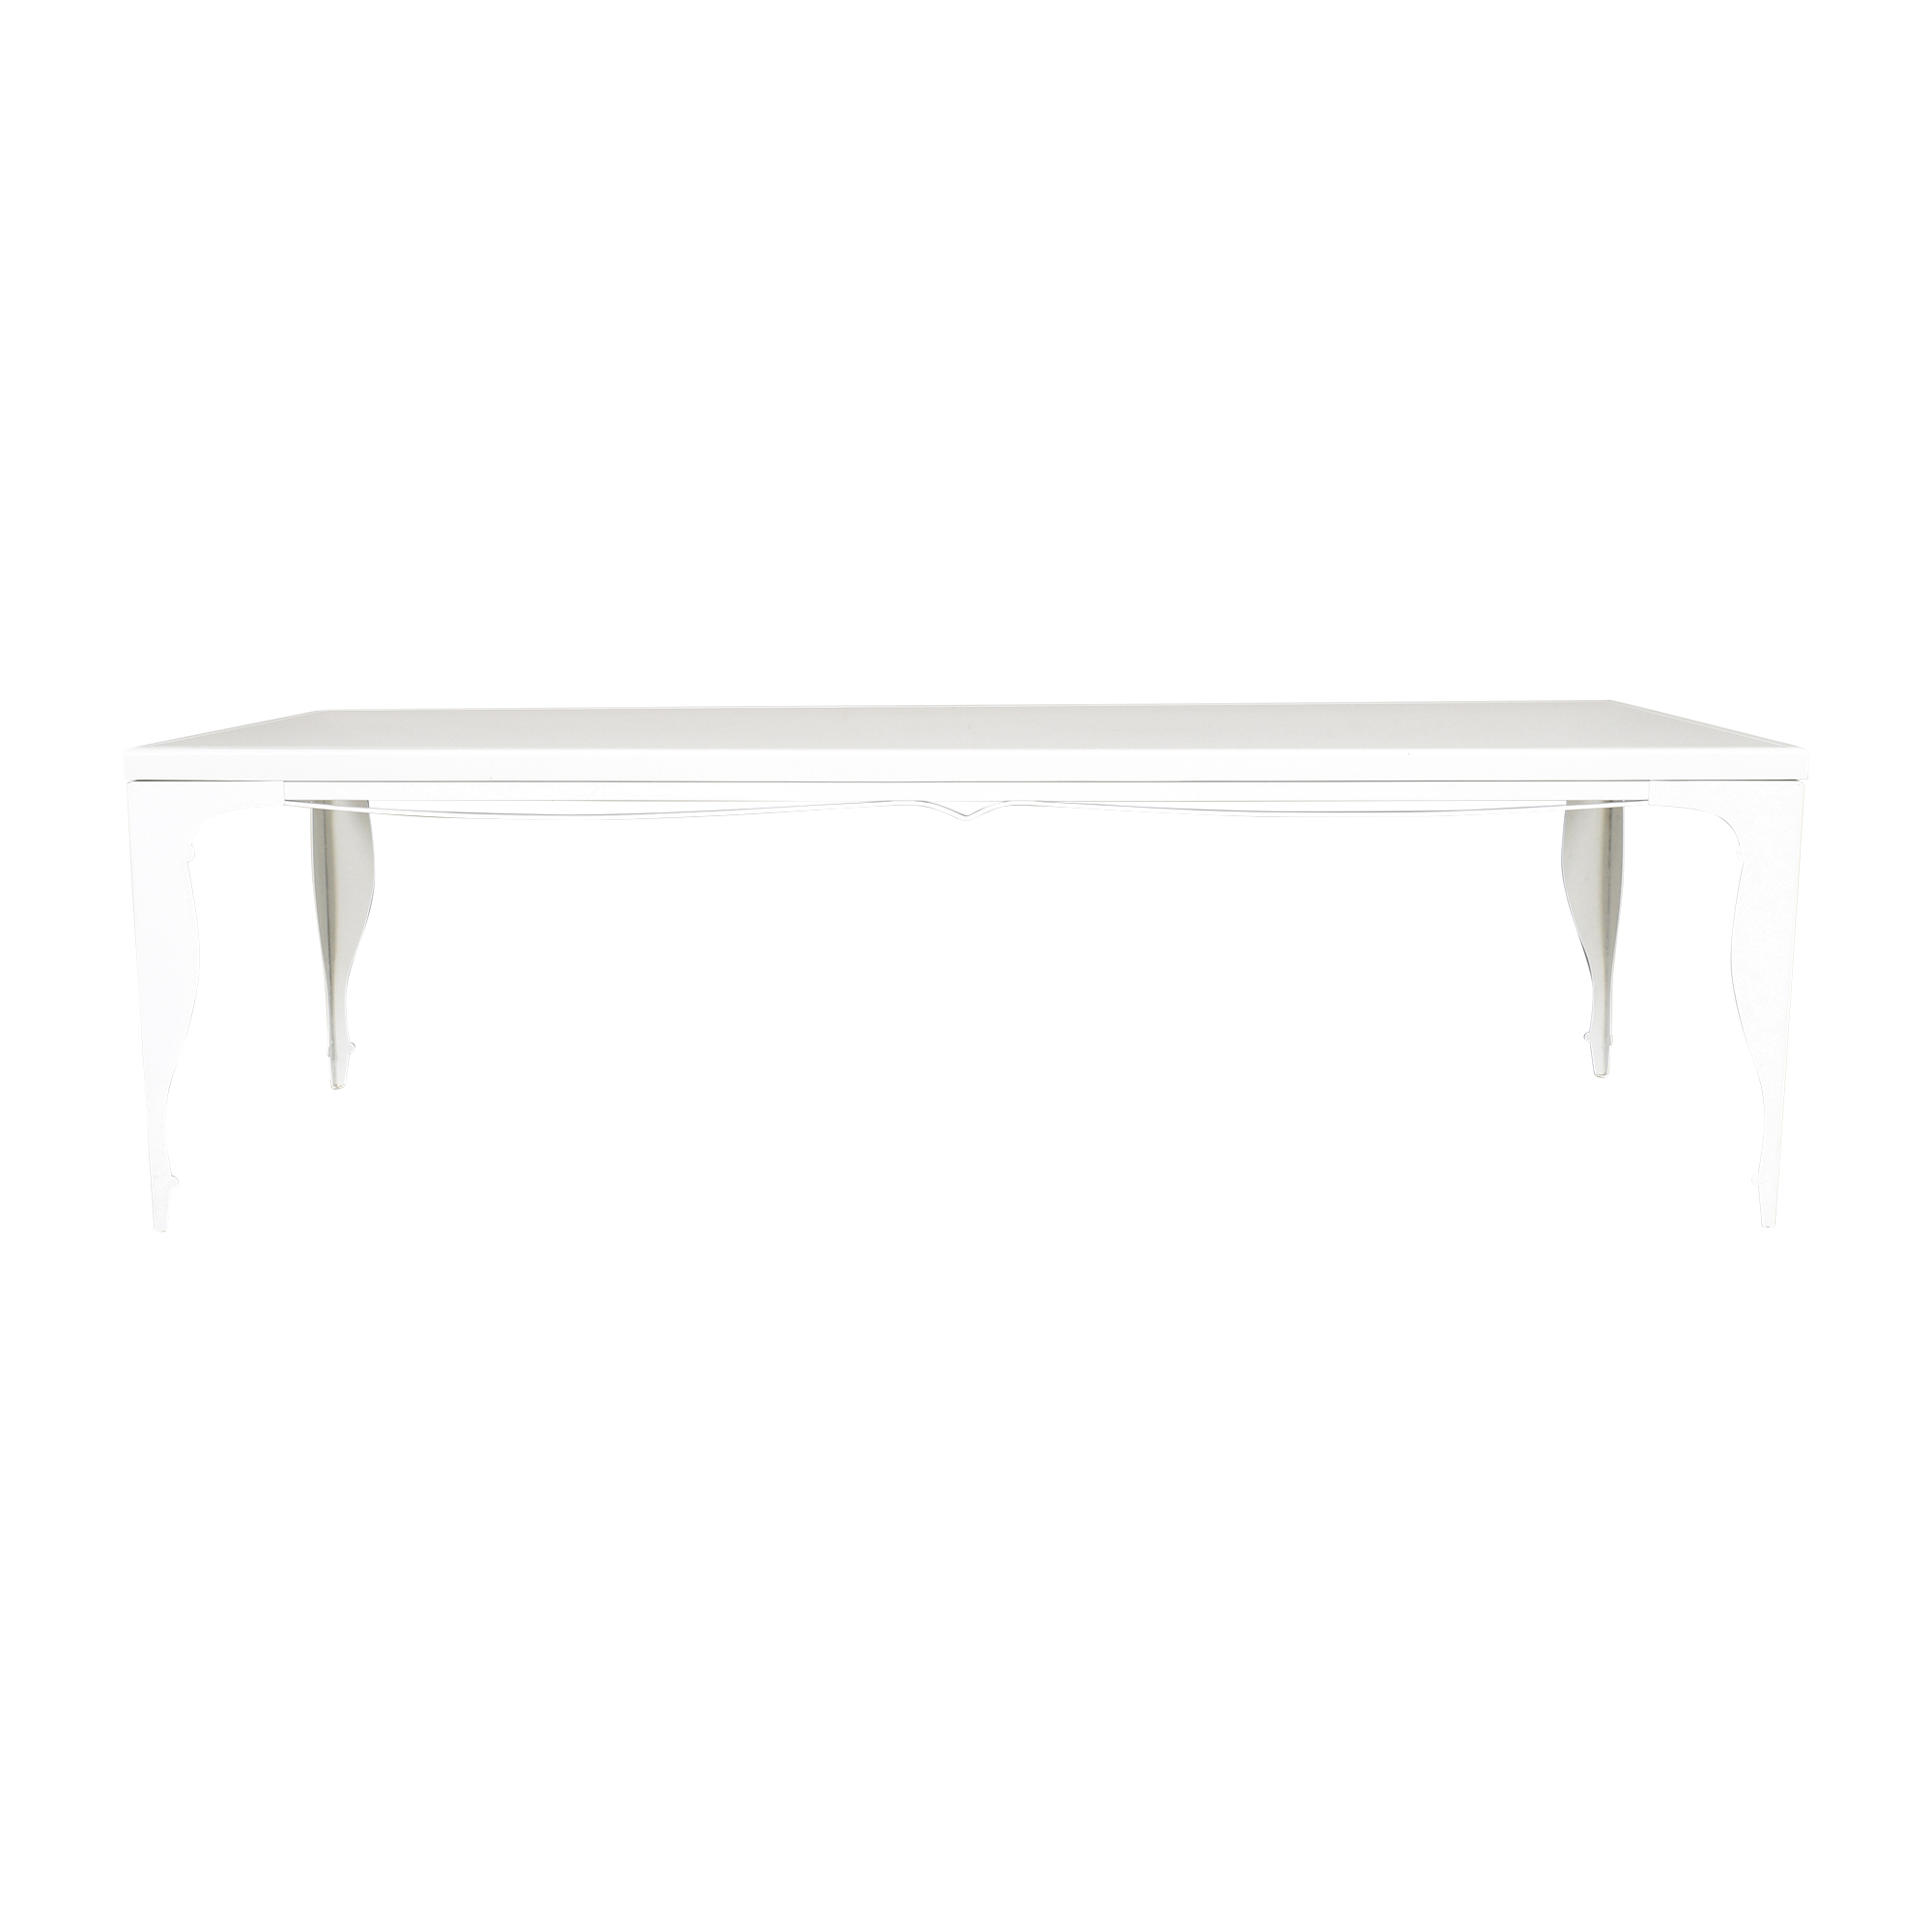 Modloft Rectangular Dining Table sale